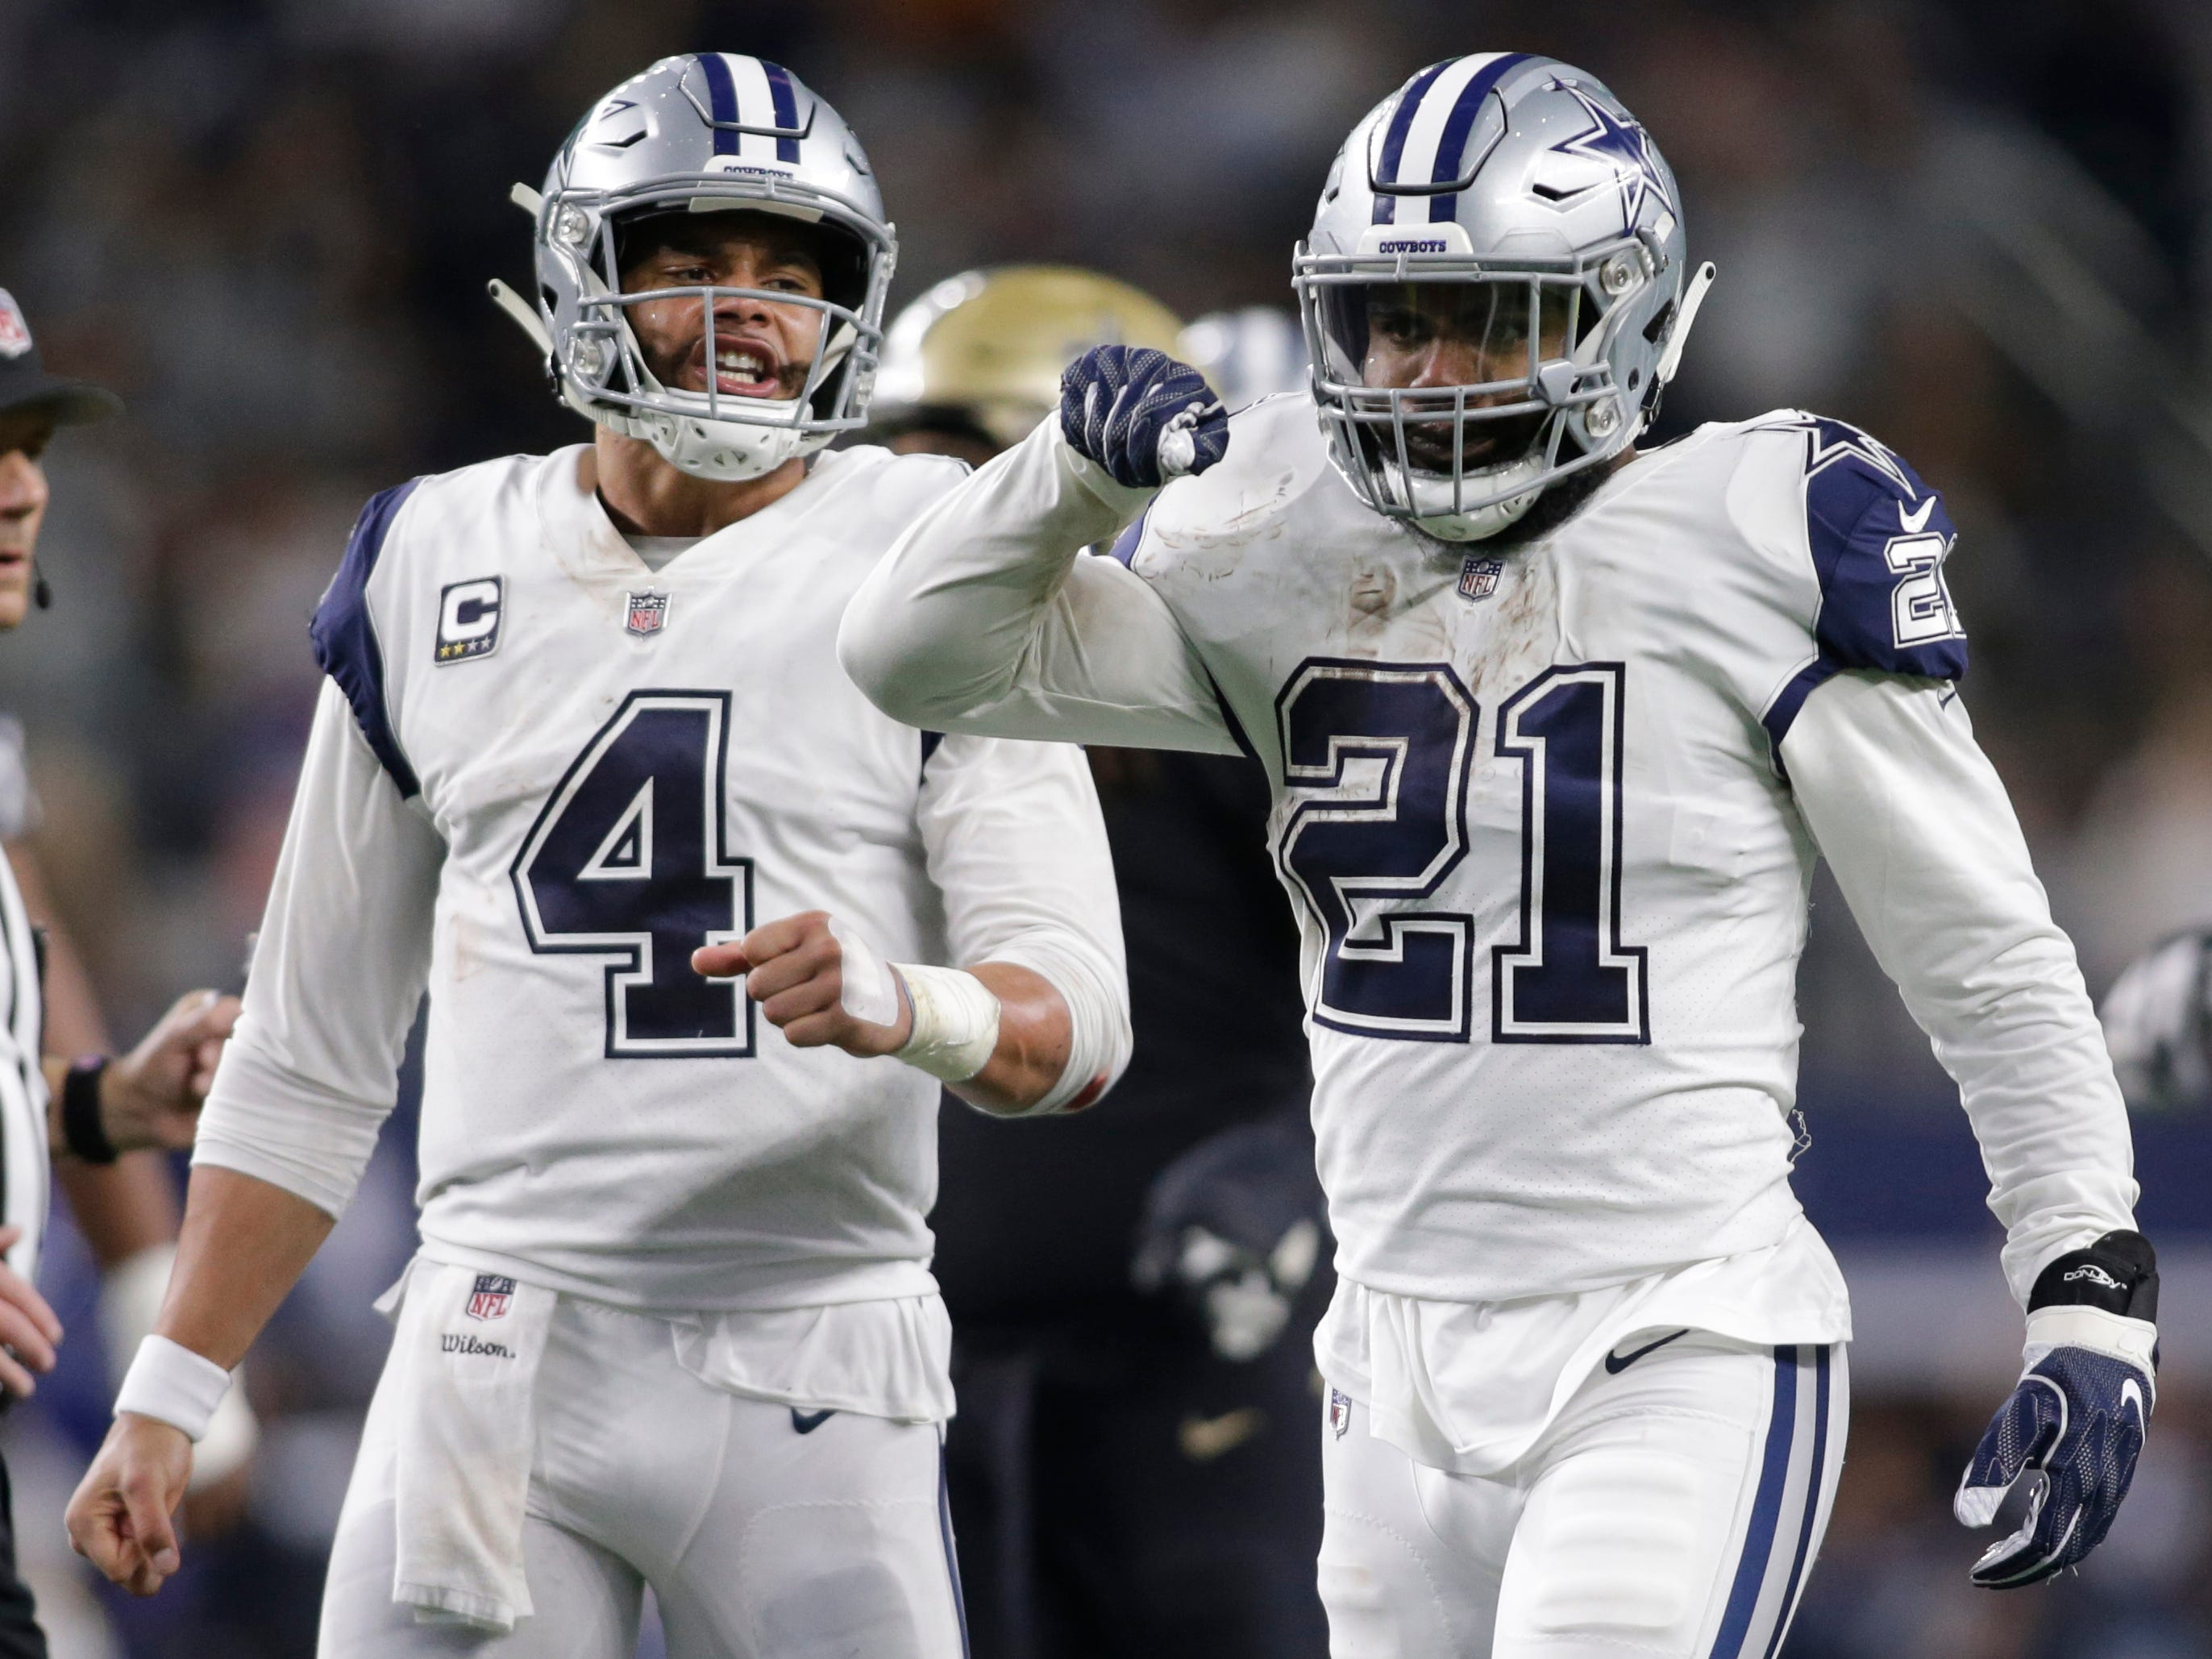 9. Cowboys (7-5) | Last game: Defeated the Saints, 13-10 | Previous ranking: 11 | The buzz: Leighton Vander Esch for Defensive Rookie of the Year?